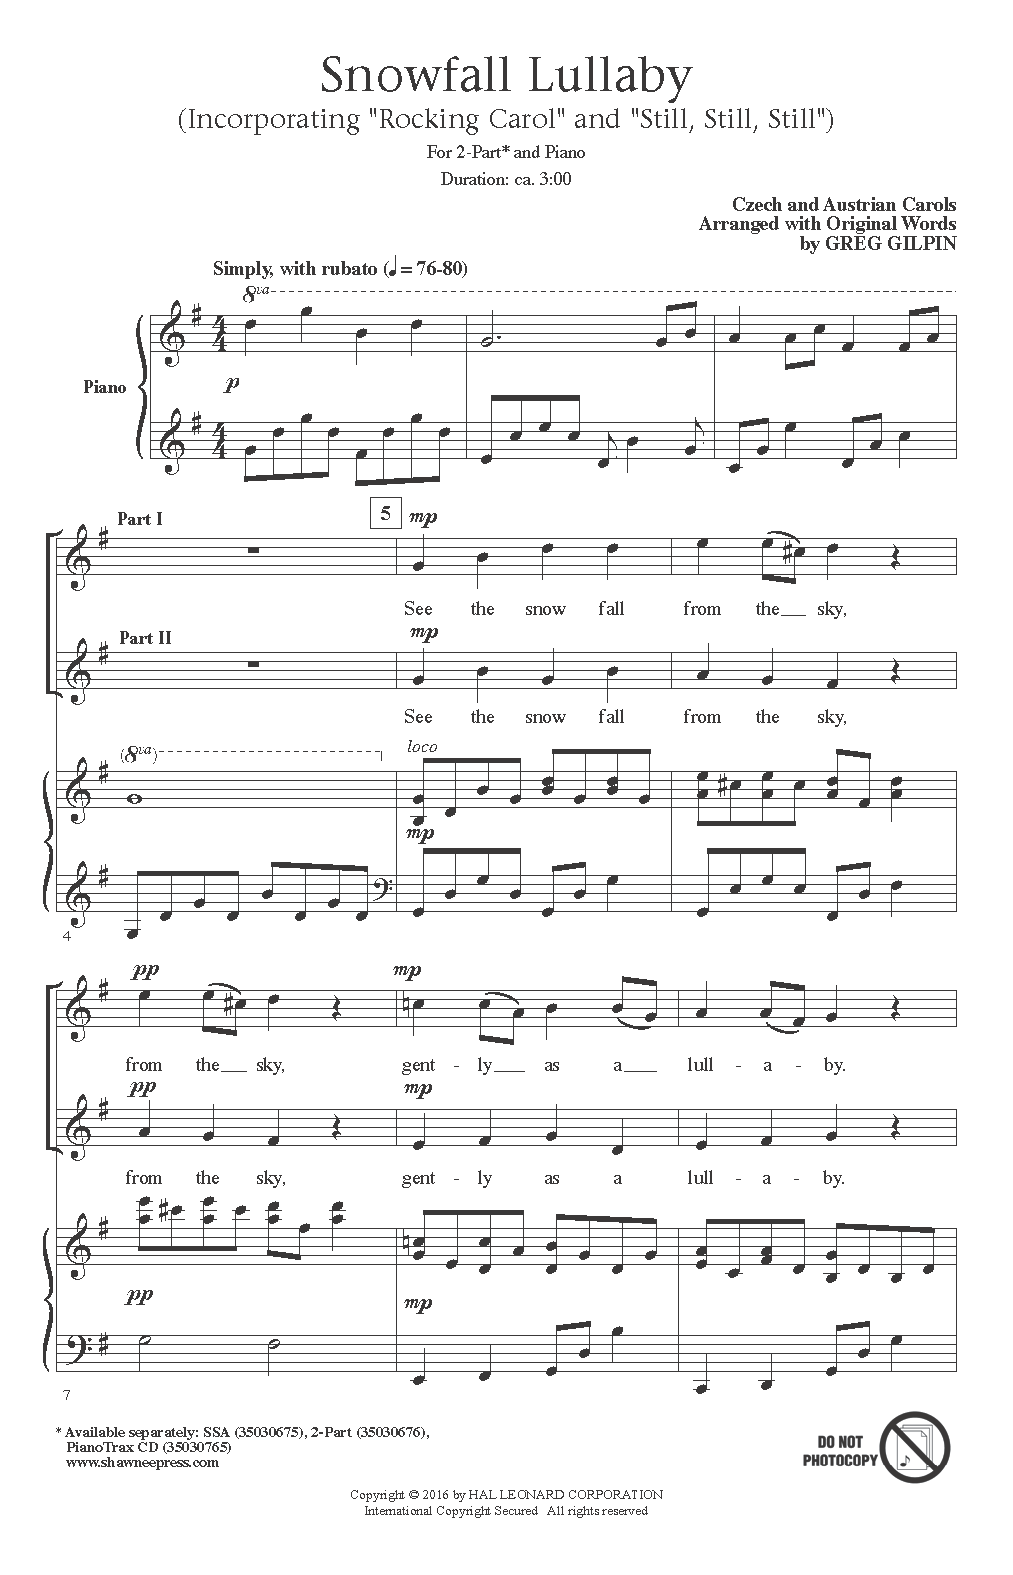 Snowfall Lullaby Sheet Music